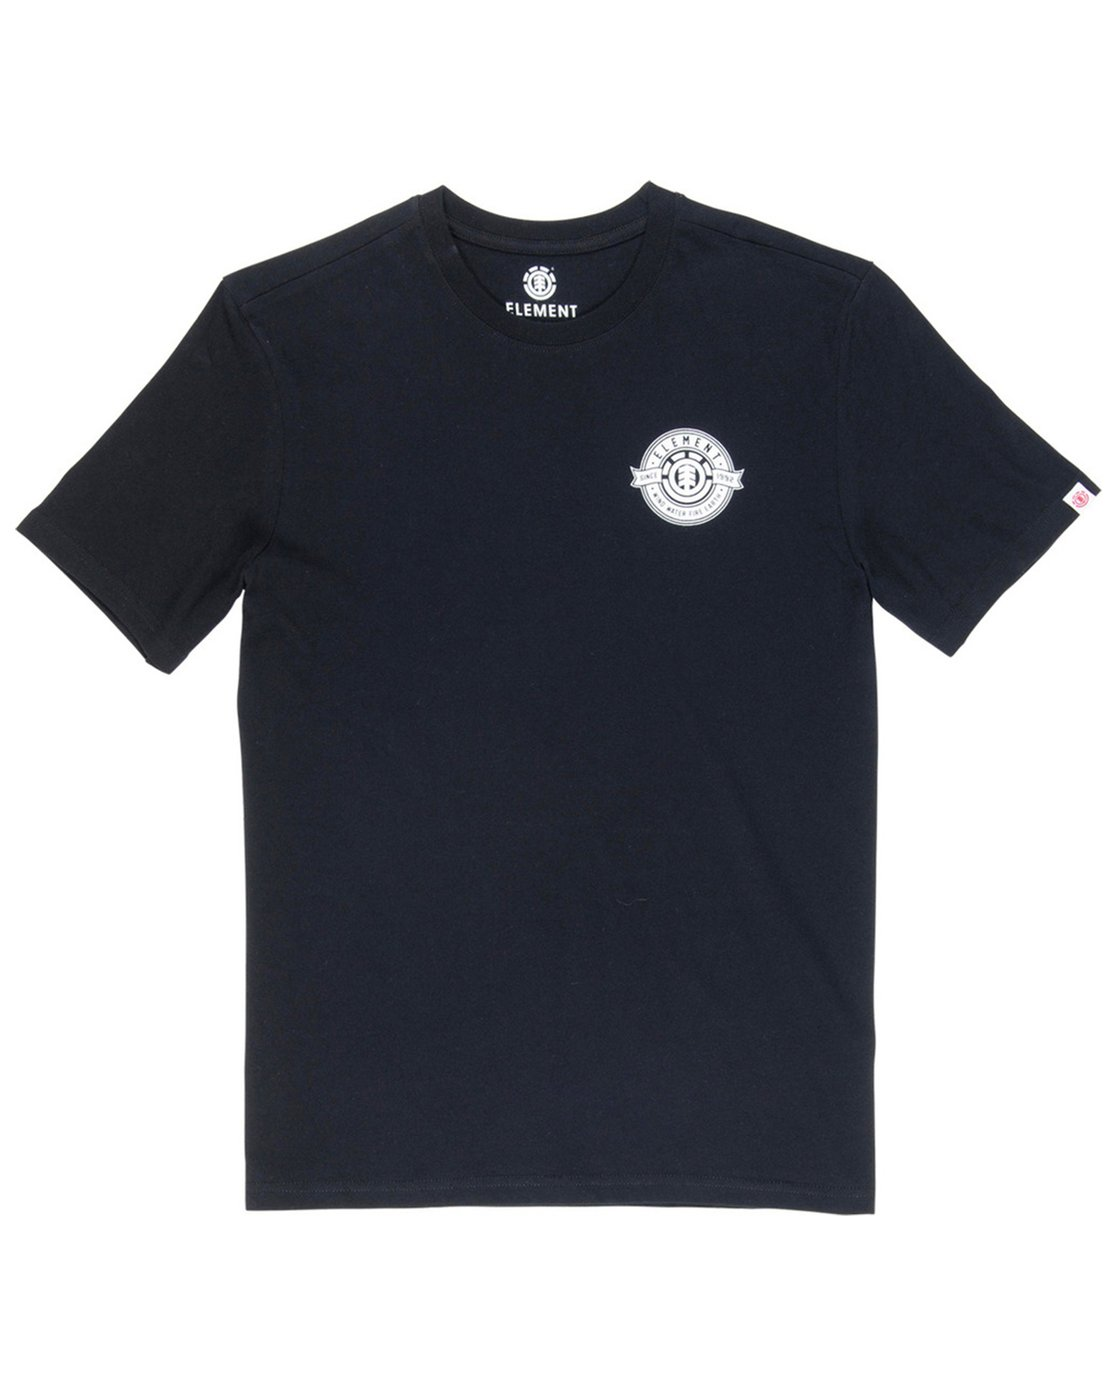 0 Medallian tee Black M401VEME Element